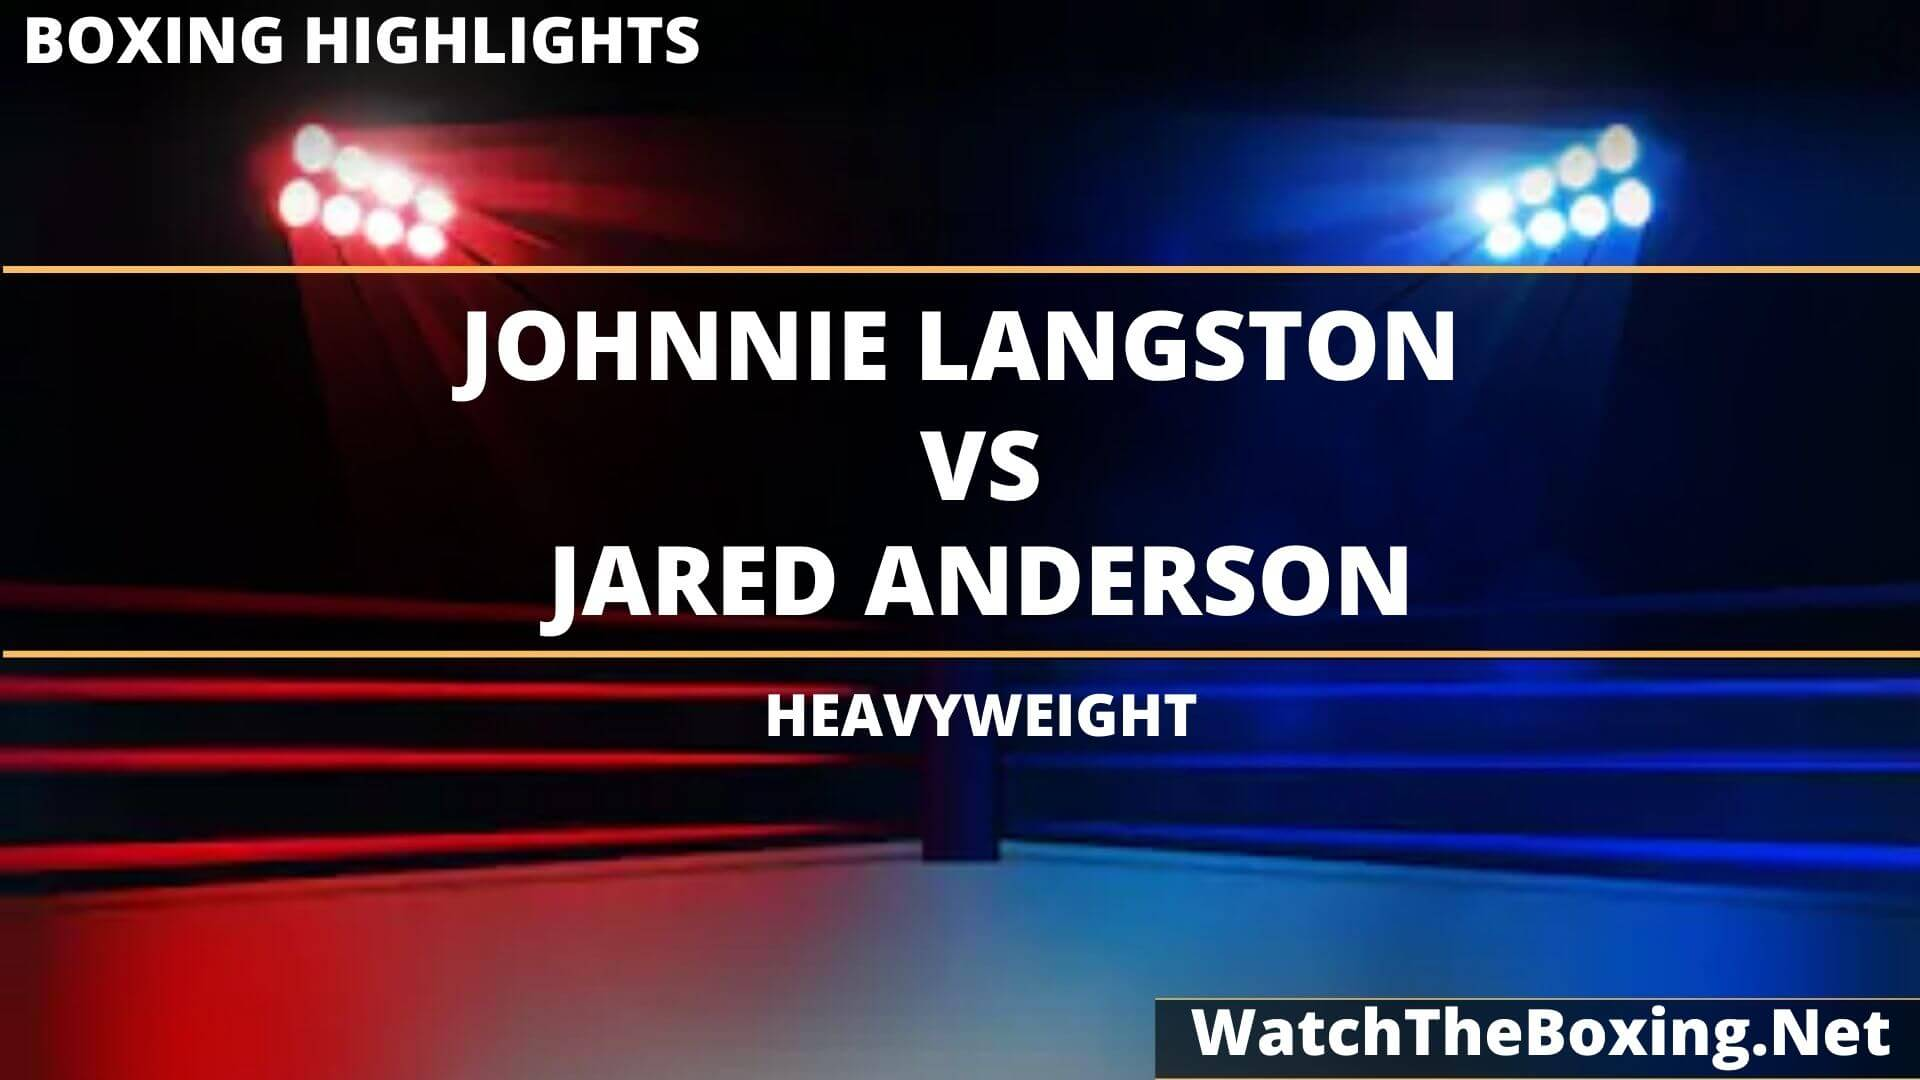 Johnnie Langston Vs Jared Anderson Highlights 2020 Heavyweight